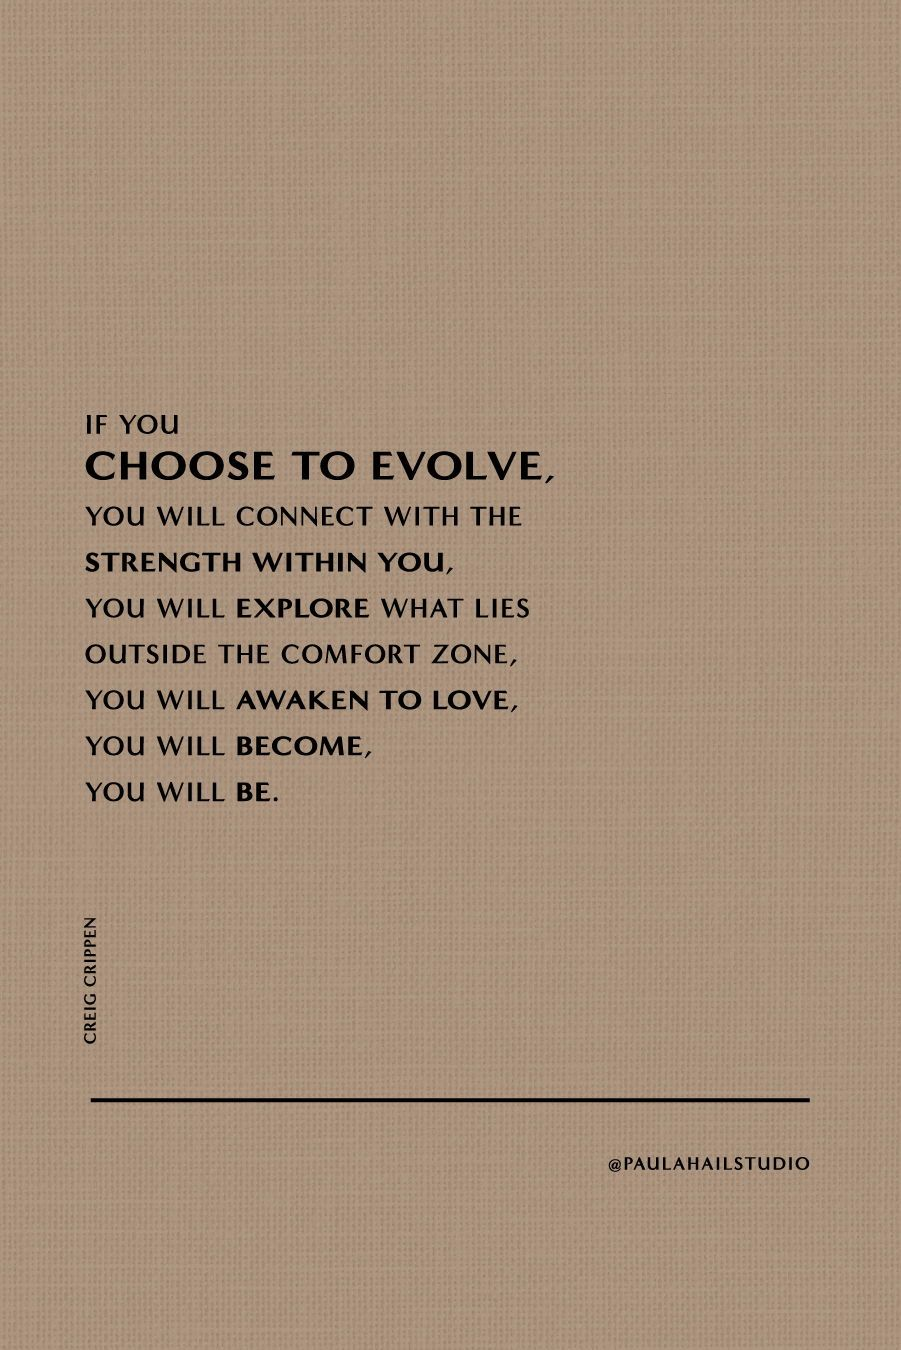 If you choose to evolve, you will connect with the strength within you - Paula Hail Studio